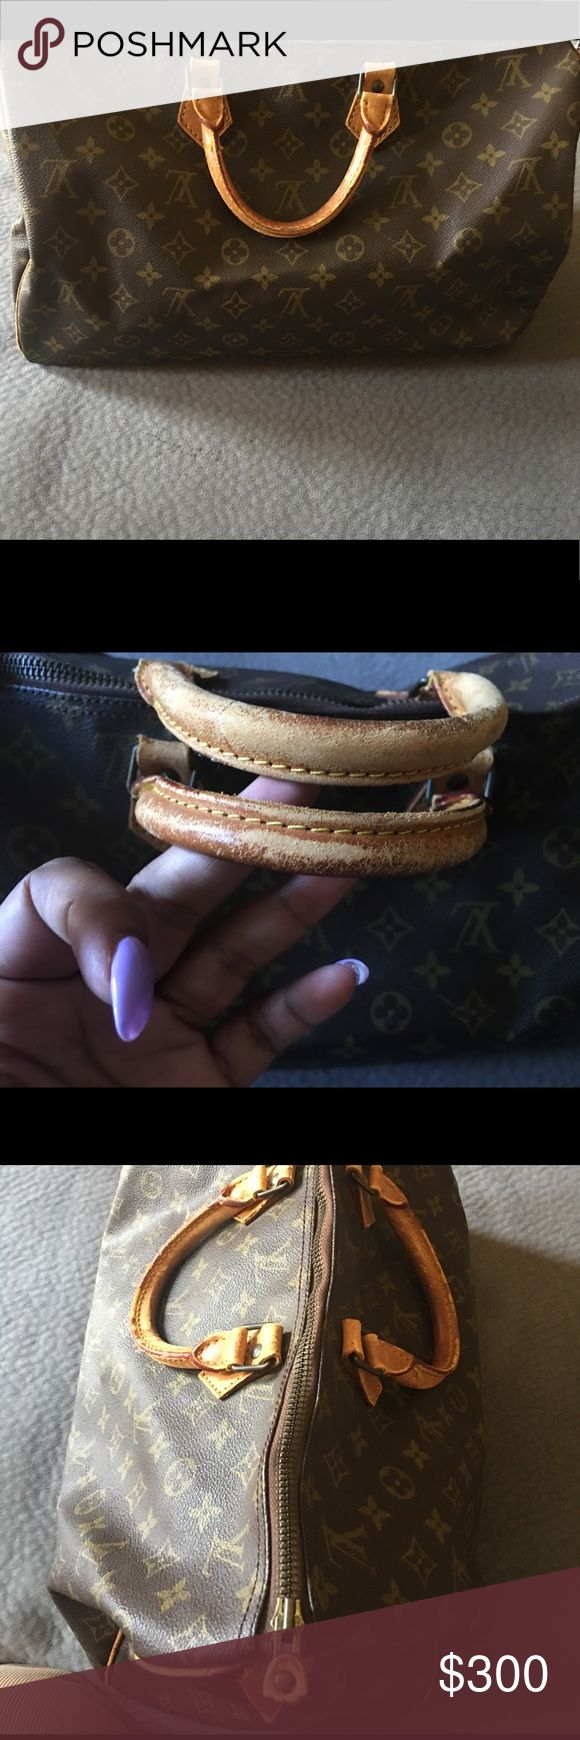 Authentic Louis Vuitton Speedy 40 Vintage speedy 40 the biggest speedy they makes zipper works fine inside looks good pictures as shown Louis Vuitton Bags Shoulder Bags